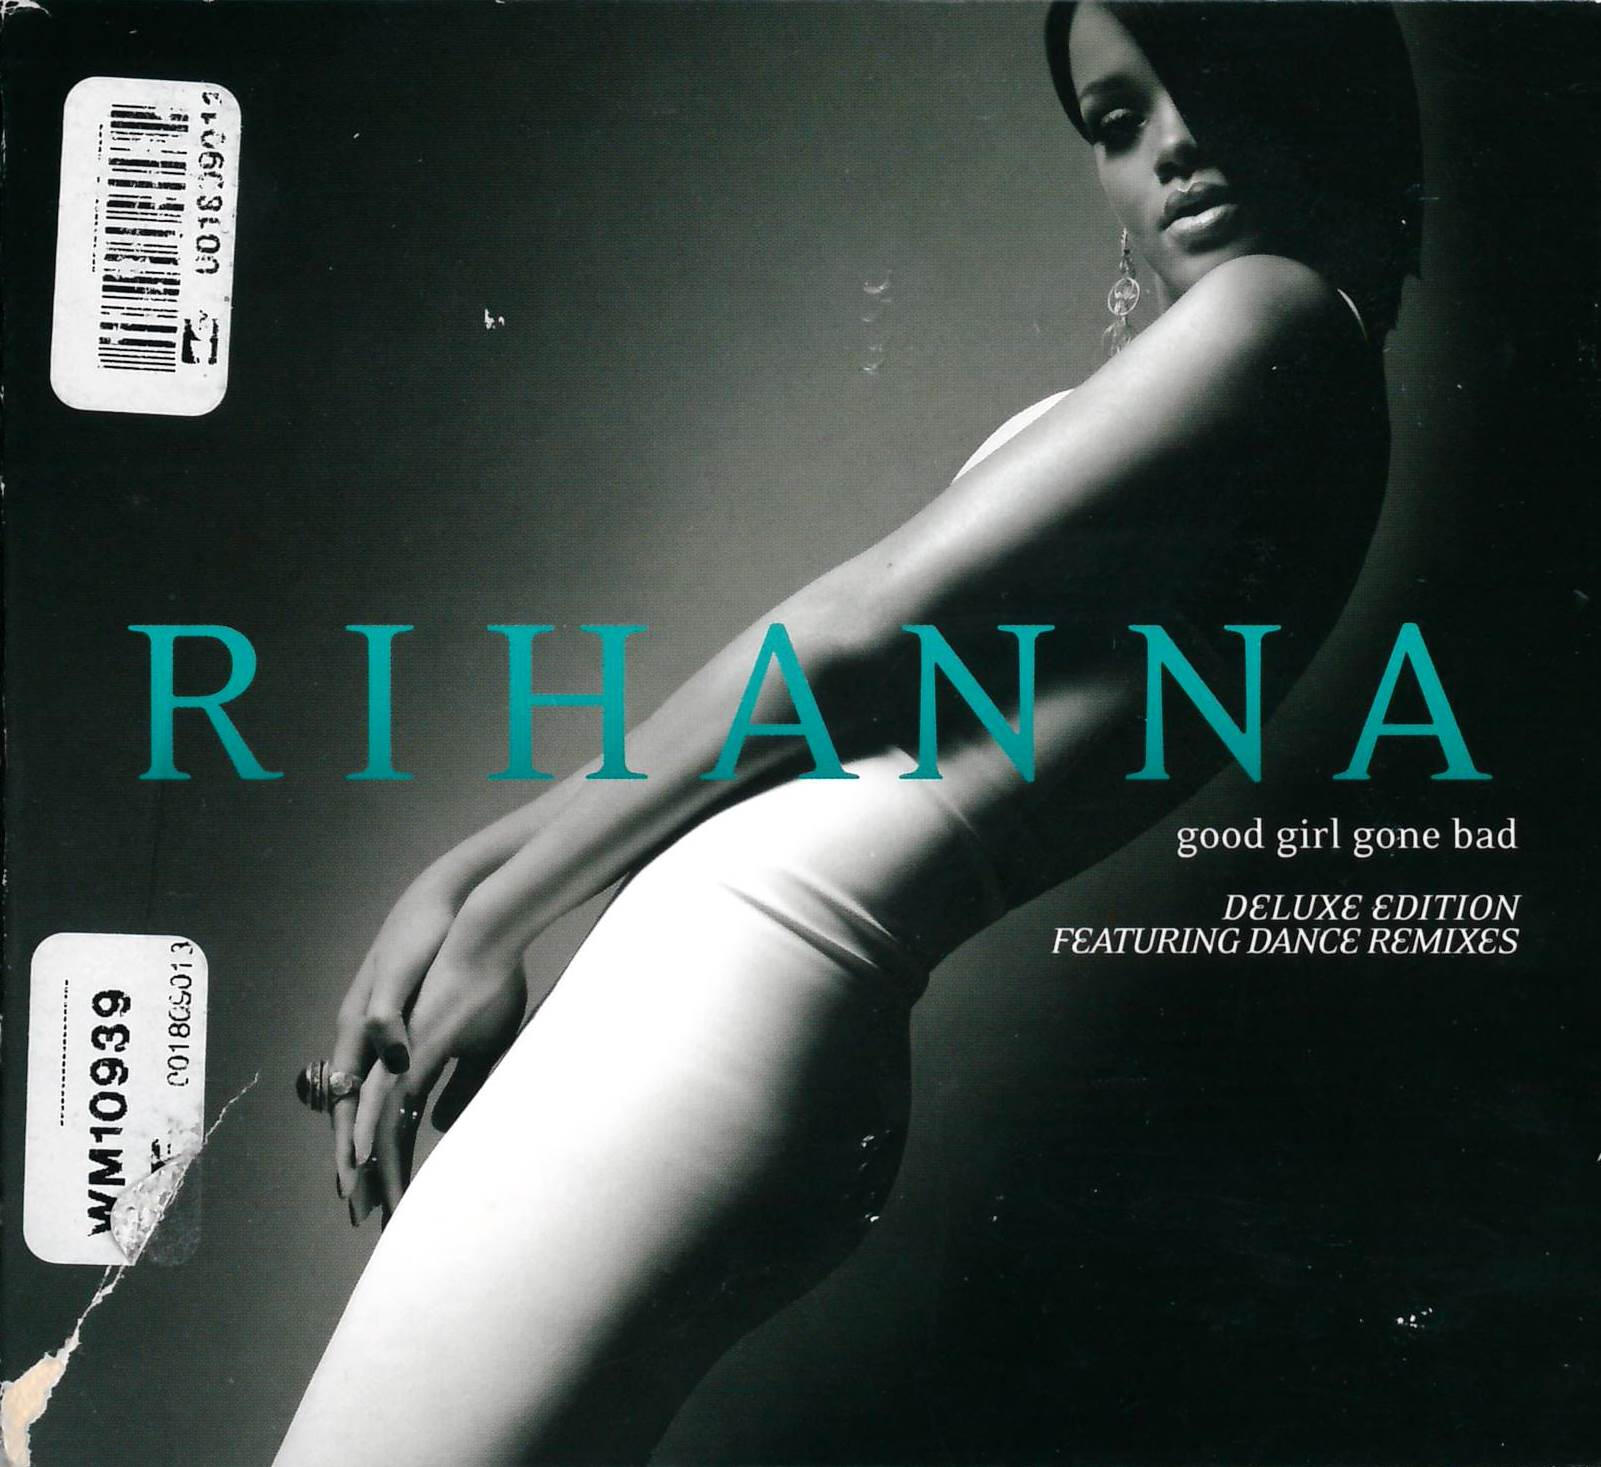 Good girl gone bad (Deluxe edition)